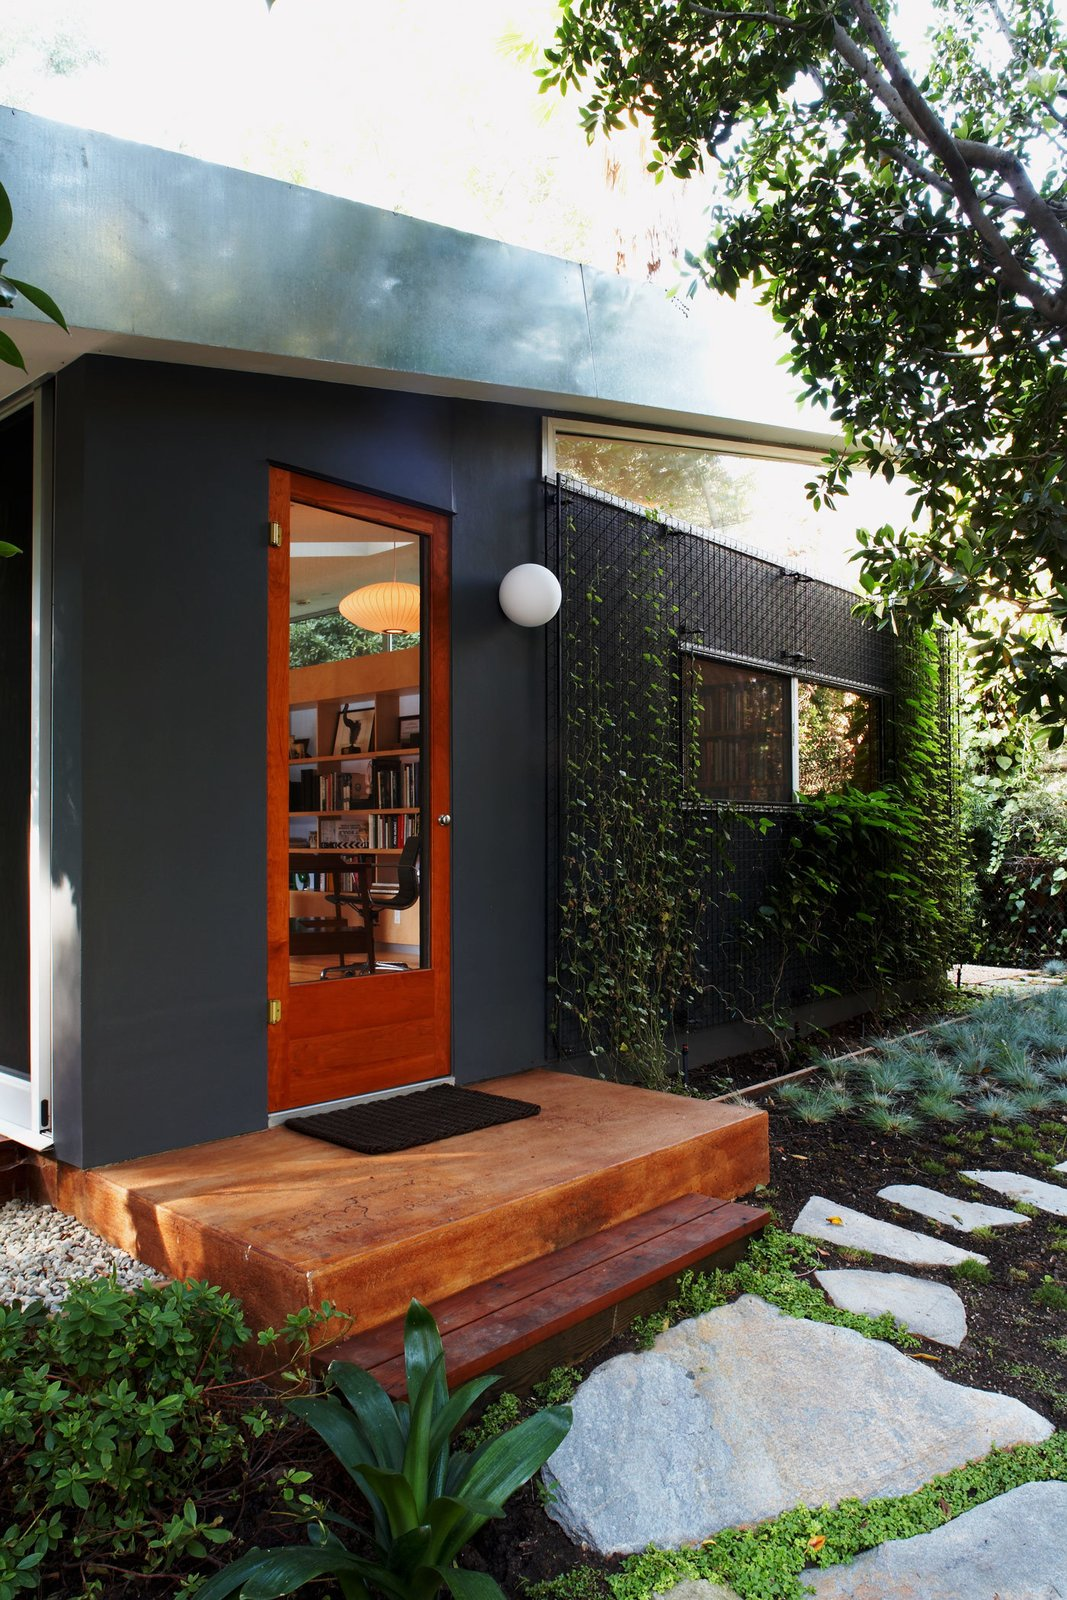 #LushHouse #modern #midcentury #hillside #seclusion #lighting #exterior #outside #landscape #plants #trees #pathway #door #wood #step #windows #detail #BeverlyHills #KingsleyStephensonArchitecture  Lush House by Kingsley Stephenson Architecture